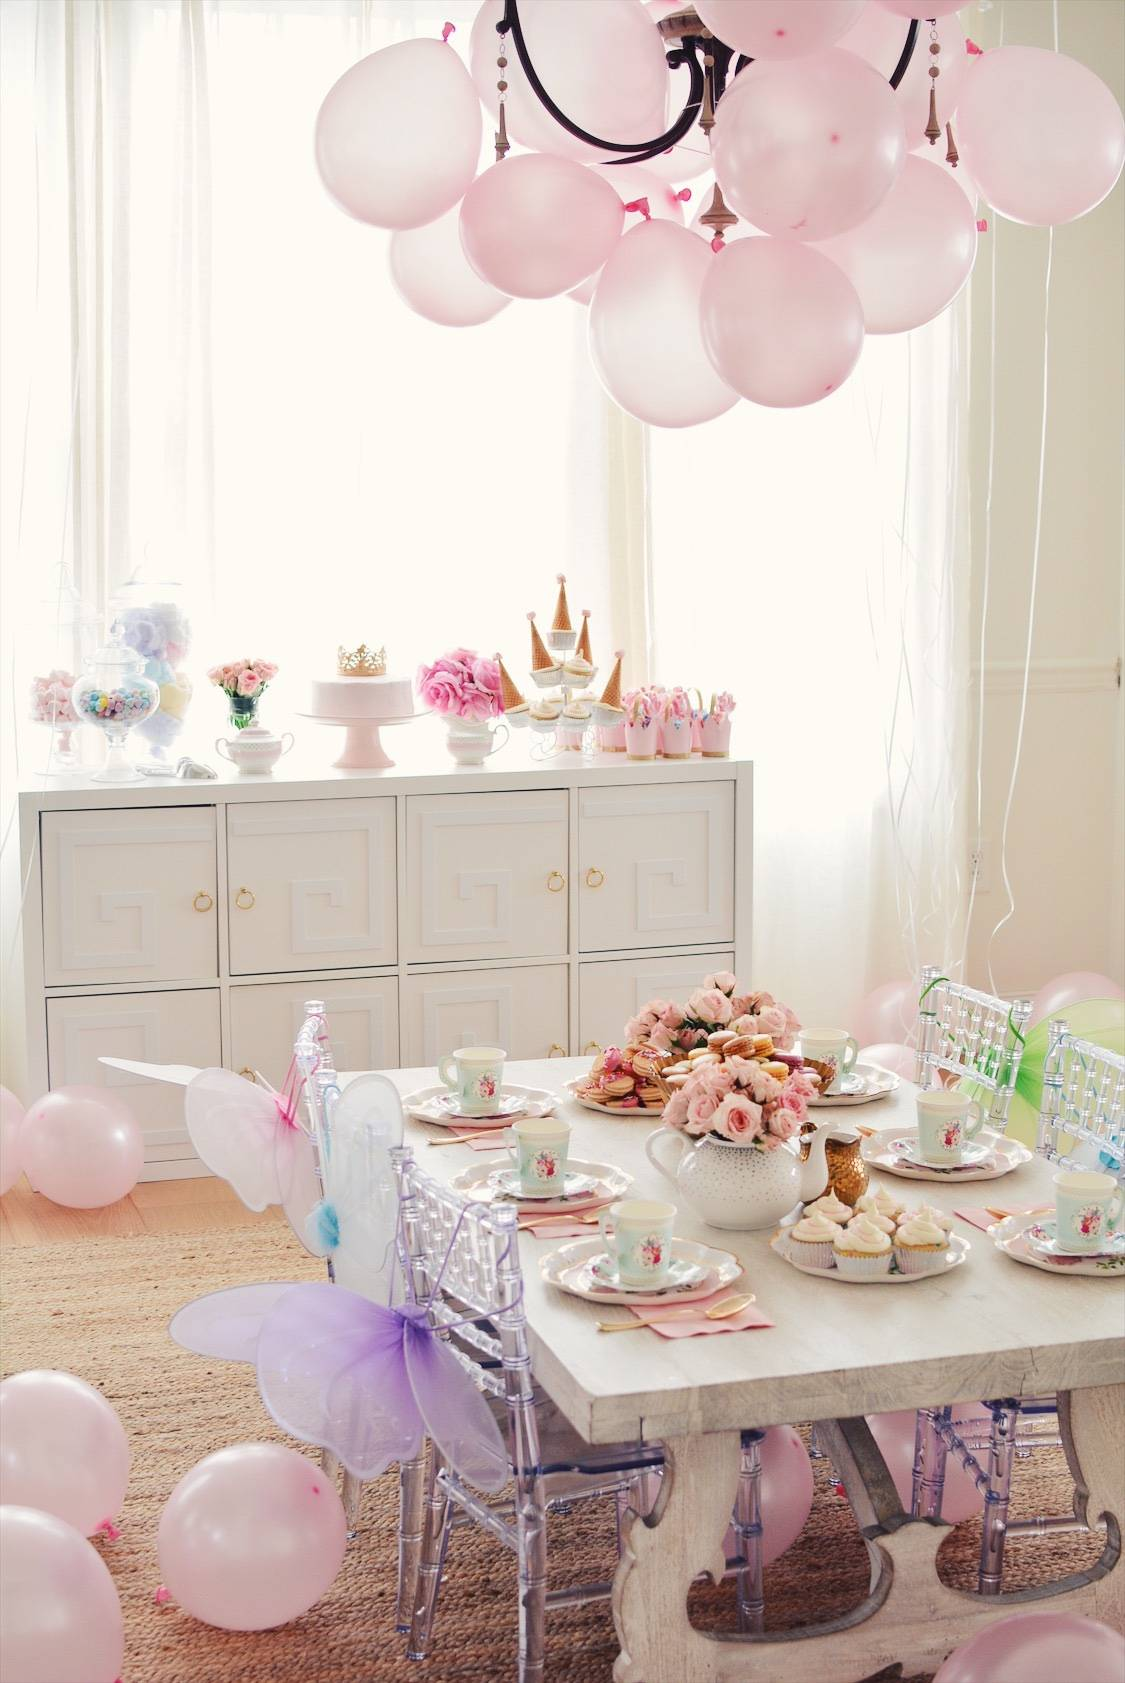 Princess Tea Party With Butterfly Wings Pink Balloons And Vintage Paper Set